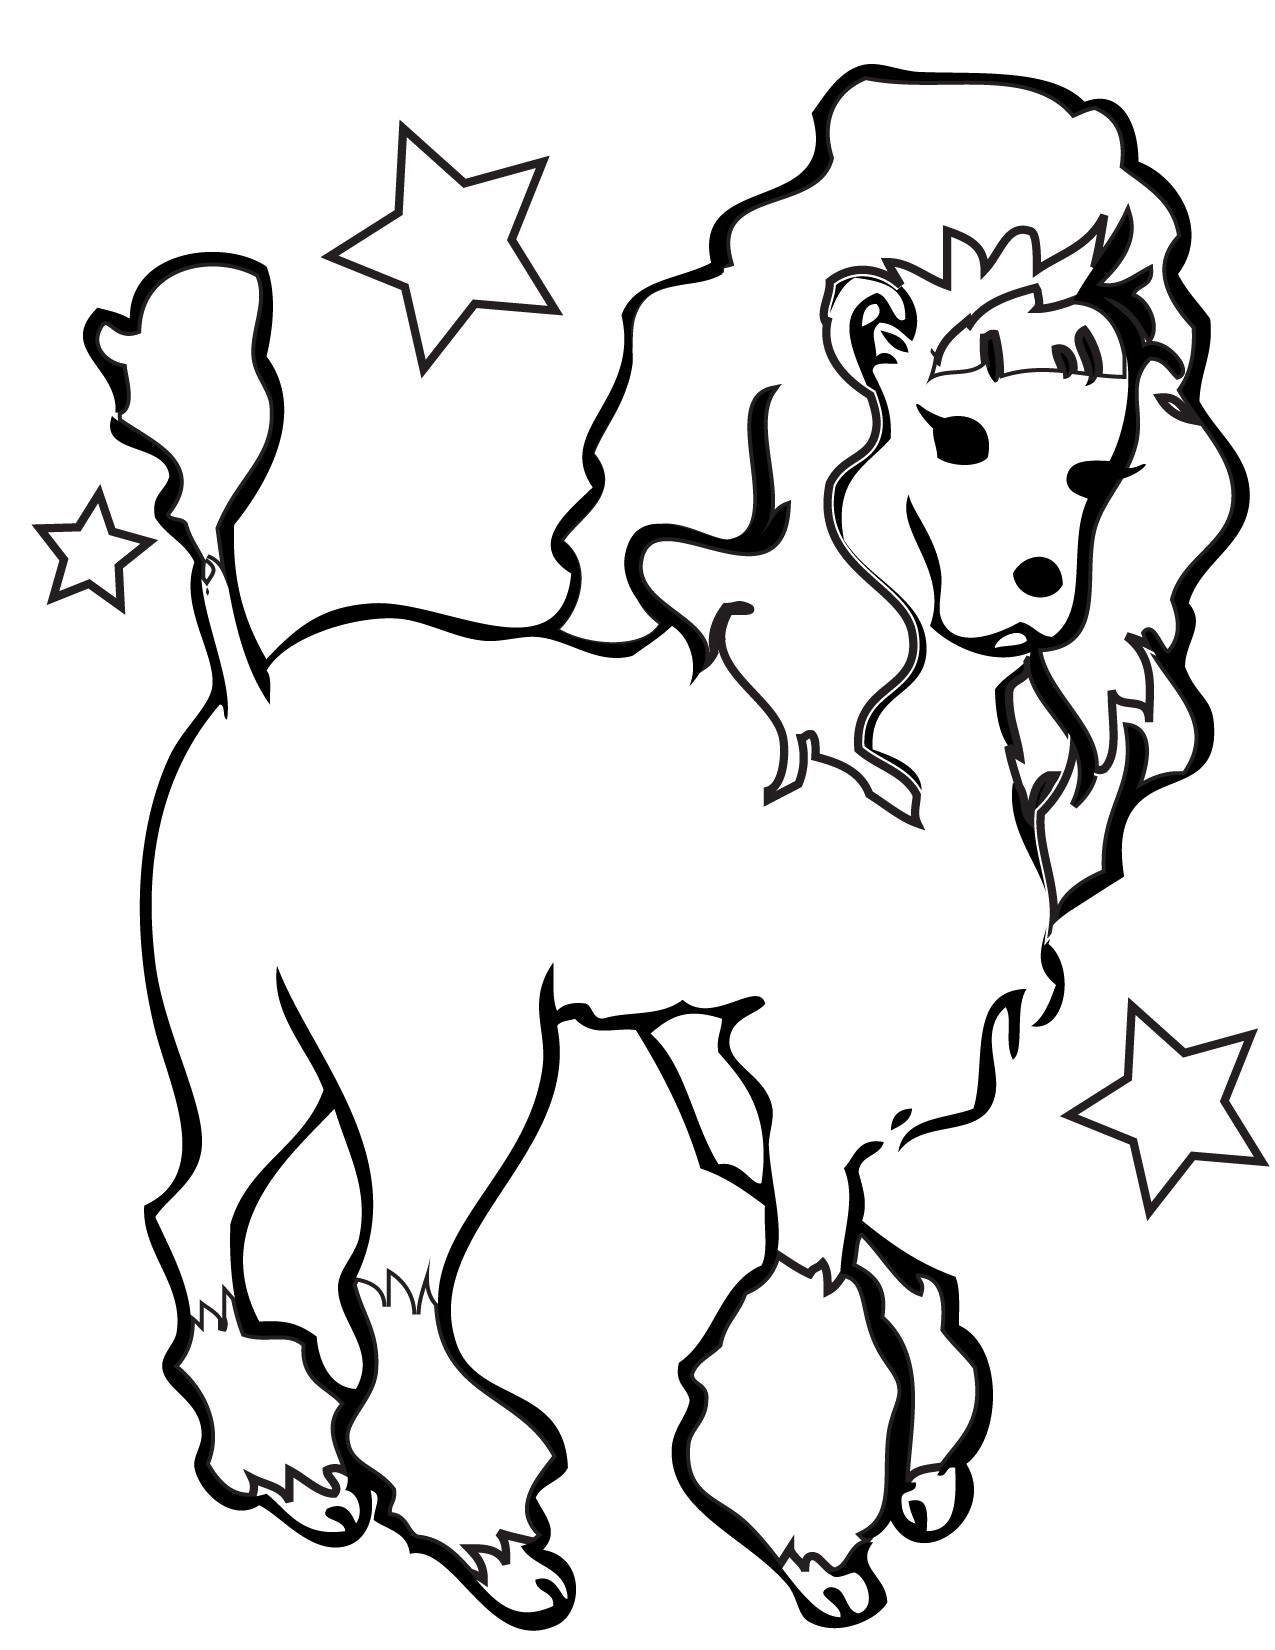 1275x1650 Fresh Poodle Coloring Page Design Printable Coloring Sheet